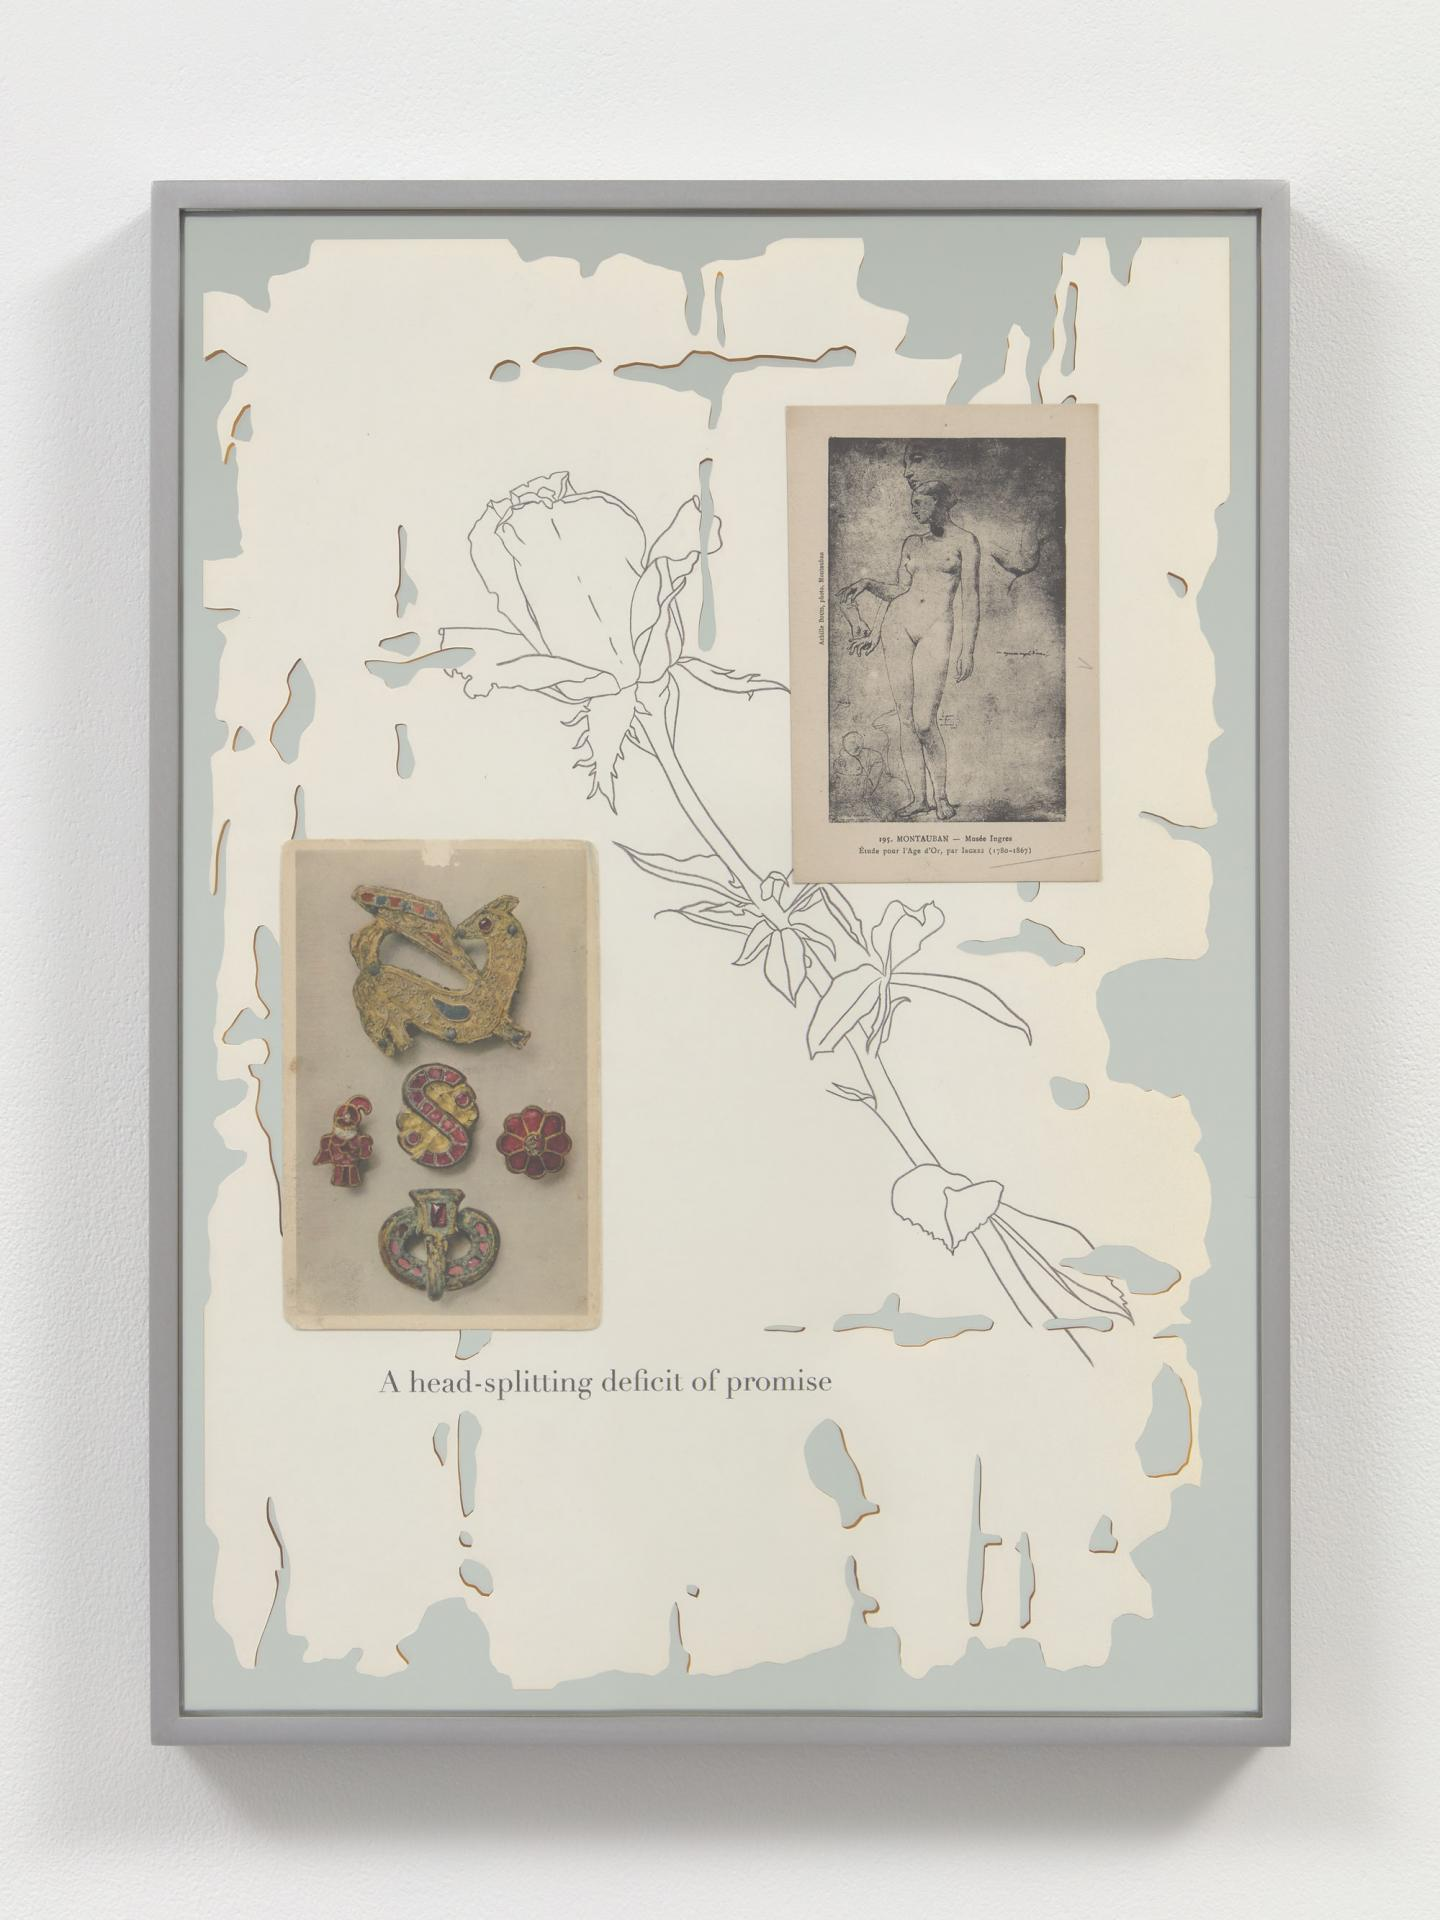 """Caitlin Keogh """"Rose Poem 4"""" ink, colored pencil, acrylic, postcard on paper mounted to mirror 17 3/4 x 12 7/8 x 1 1/4 / 45.08 x 32.7 x 3.17 cm framed"""